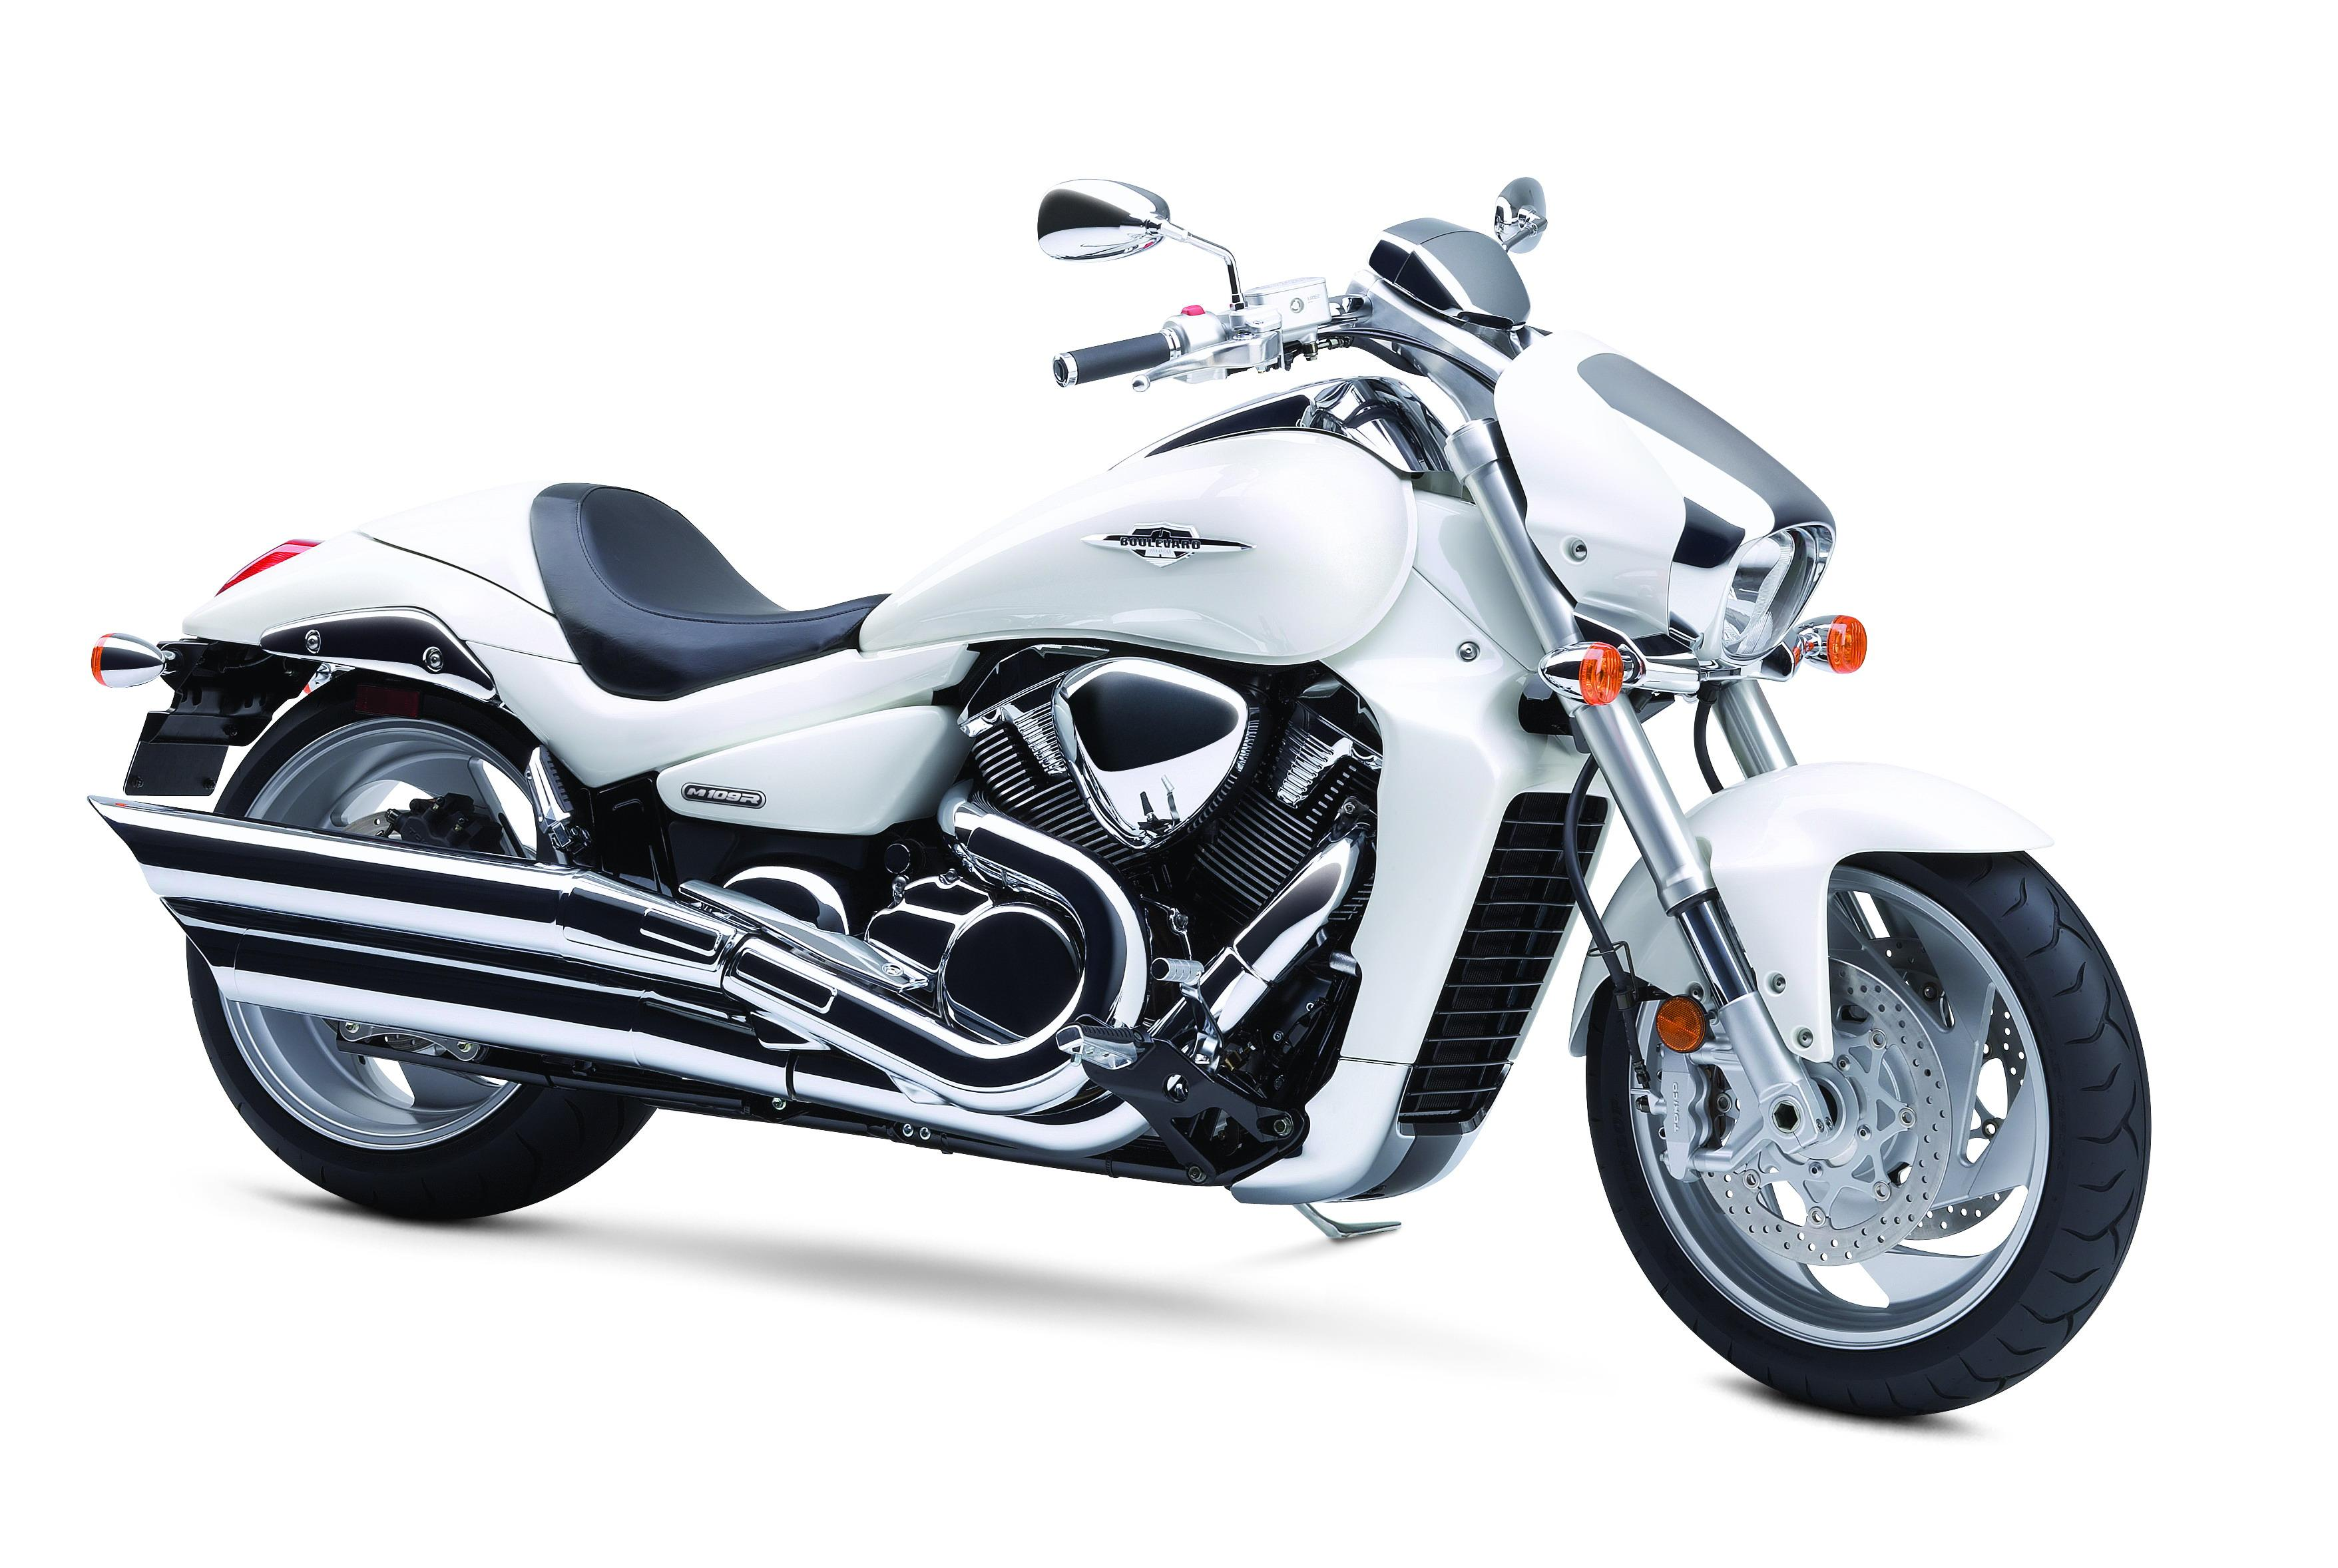 2007 Suzuki Boulevard M109R | Top Speed